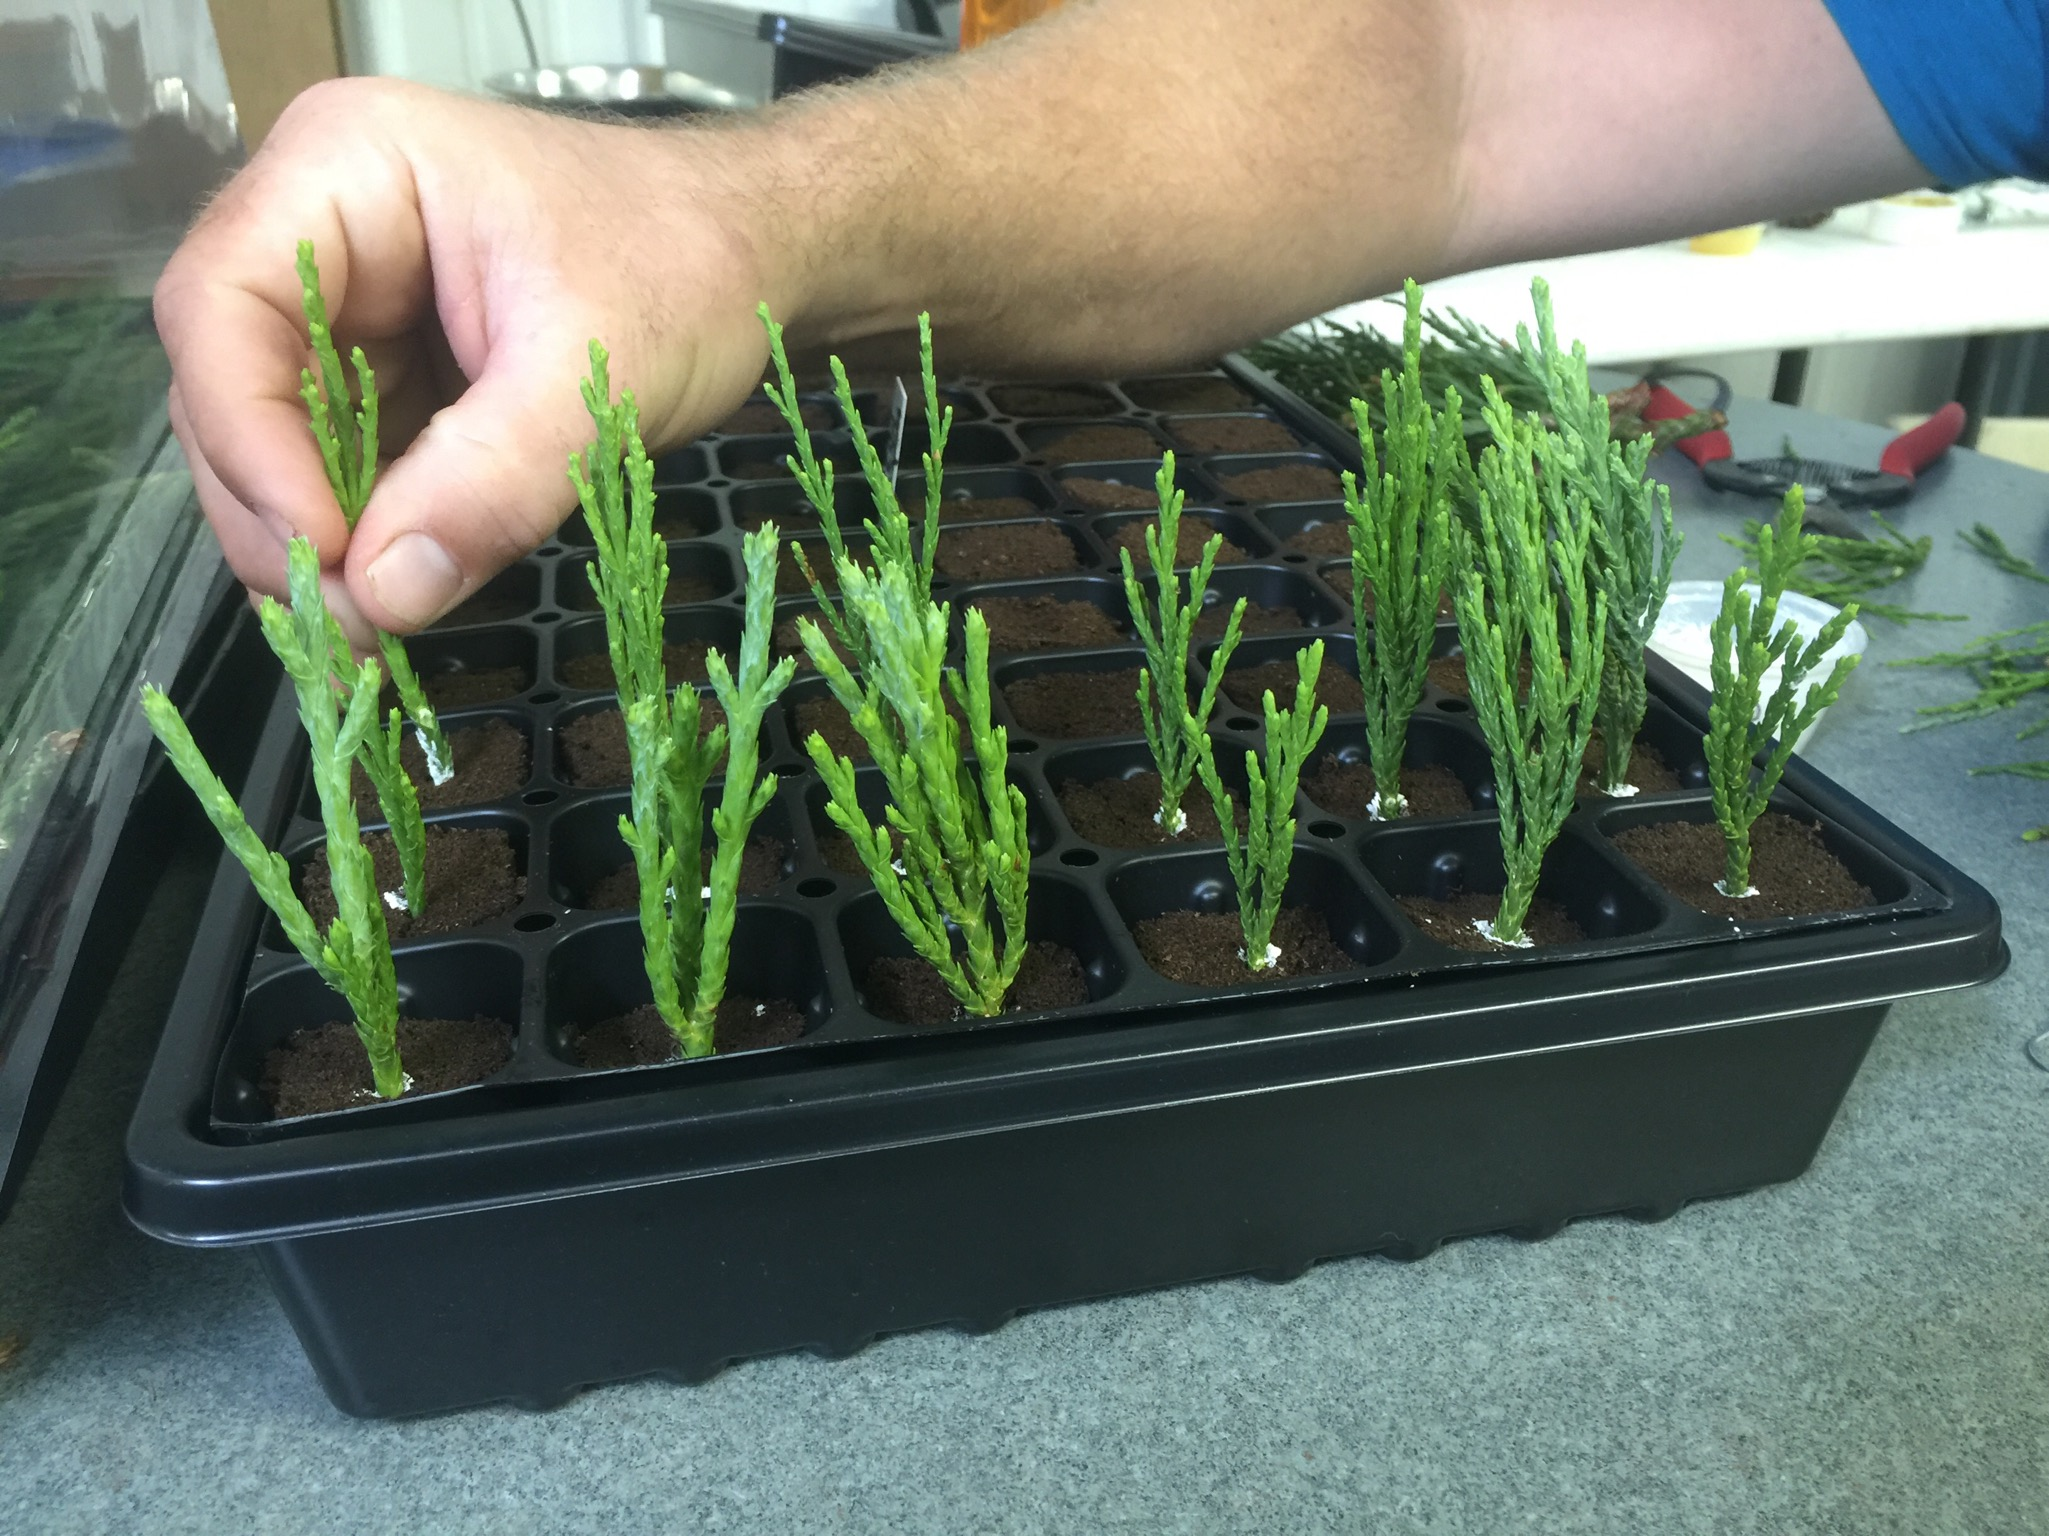 27. Here is a partial tray of cuttings after they have gone into their new protective peat blocks.